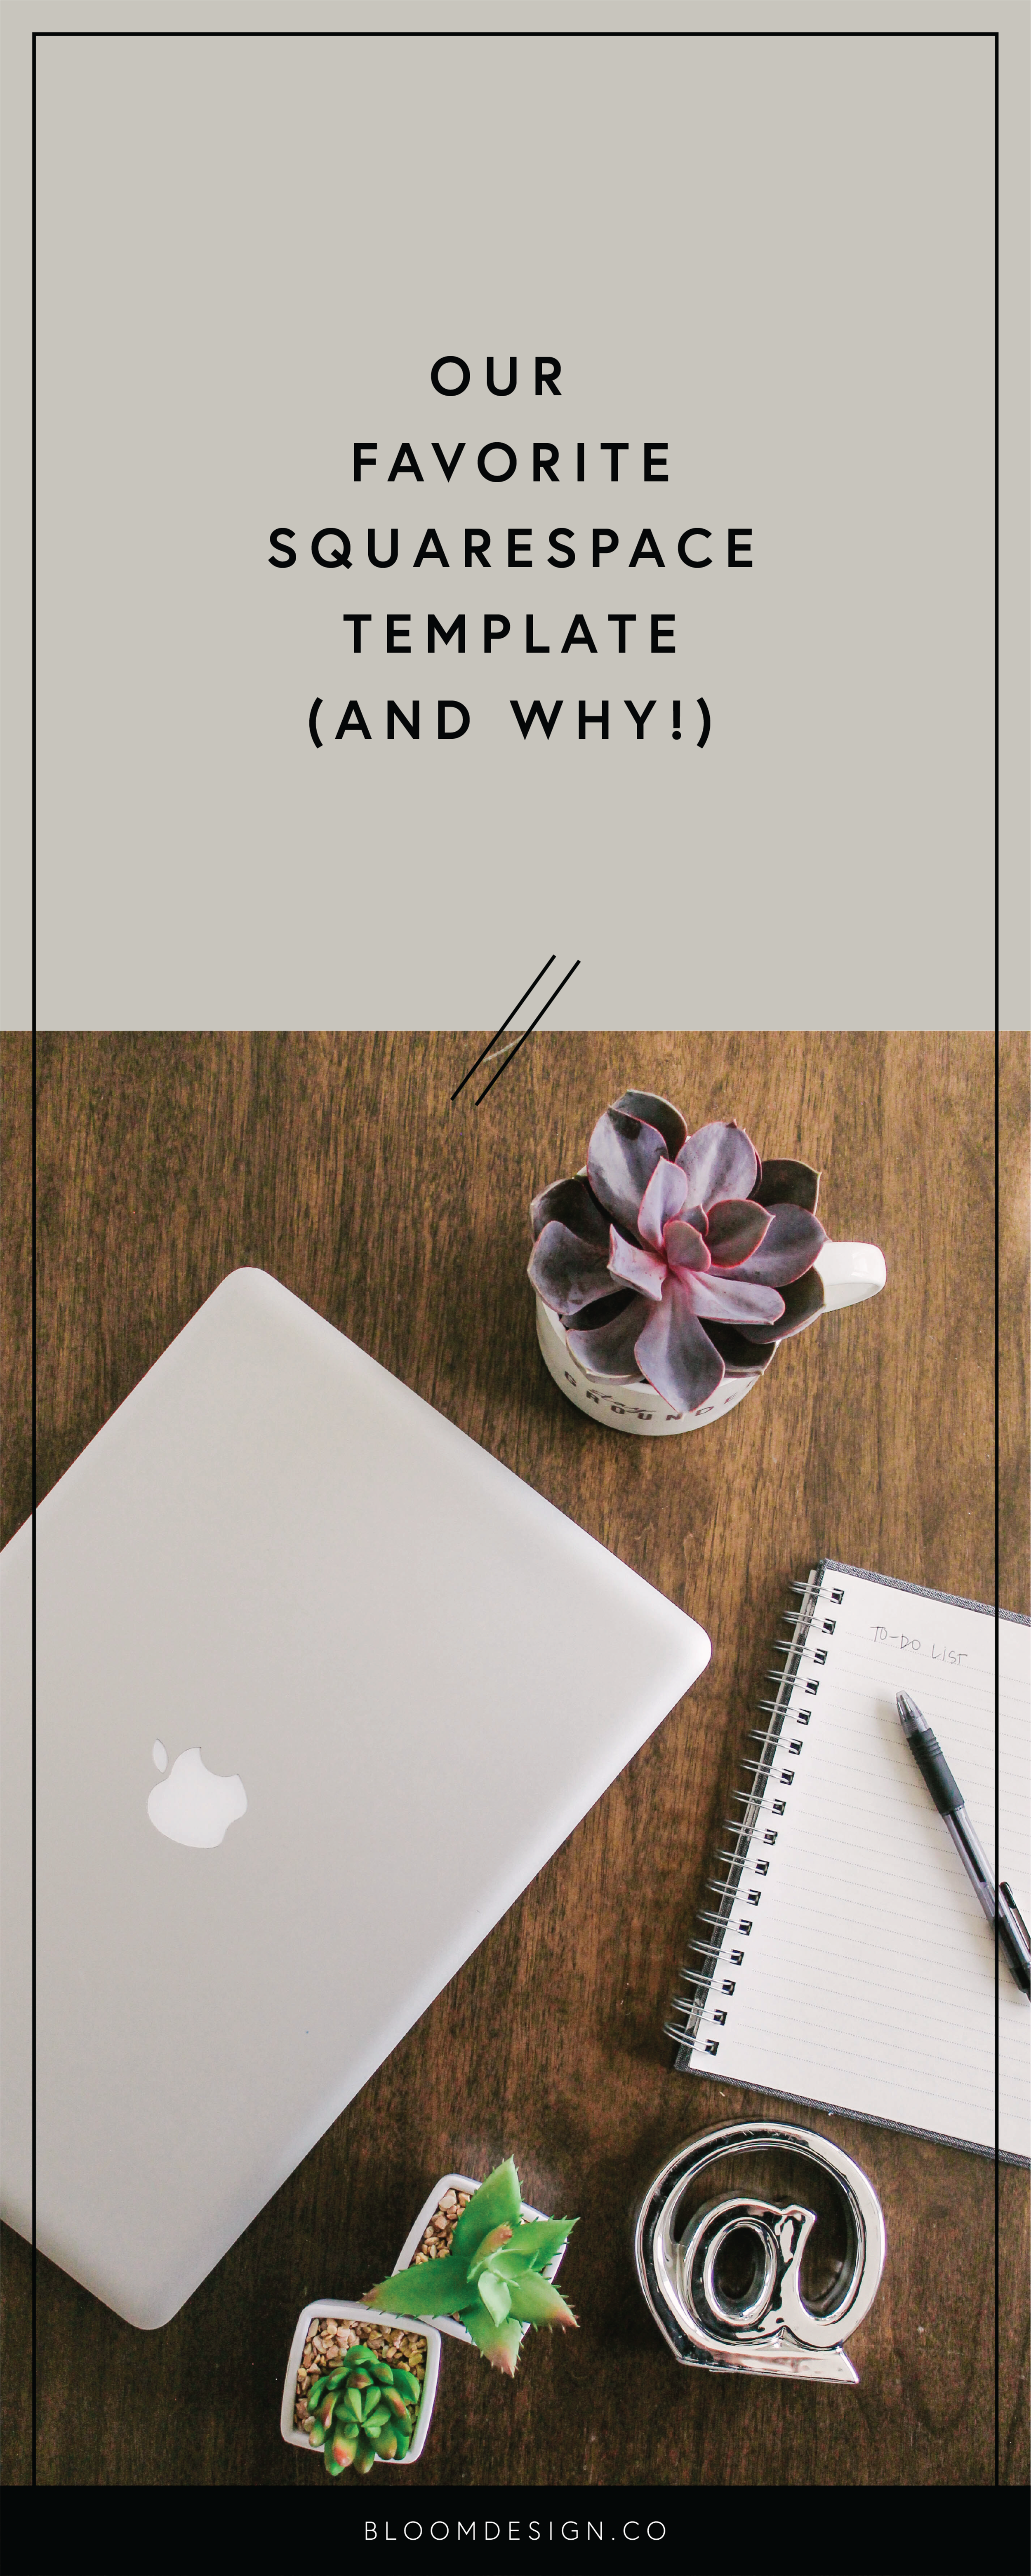 Wondering where to start as you begin designing your own website? It can be overwhelming to scroll through all of the options Squarespace has to offer. But we have a favorite template and in this blog post, we're telling you all the secrets about choosing a template and why this one is our go-to pick for every client we design for! #girlboss #bossbabe #momboss #sidehustle #squarespace #websitedesign #DIYwebsite #webdesign #squarespacedesigner #squarespacecircle #smallbusiness #shopsmall #sidegig #bizowner #wahm #workathomemom